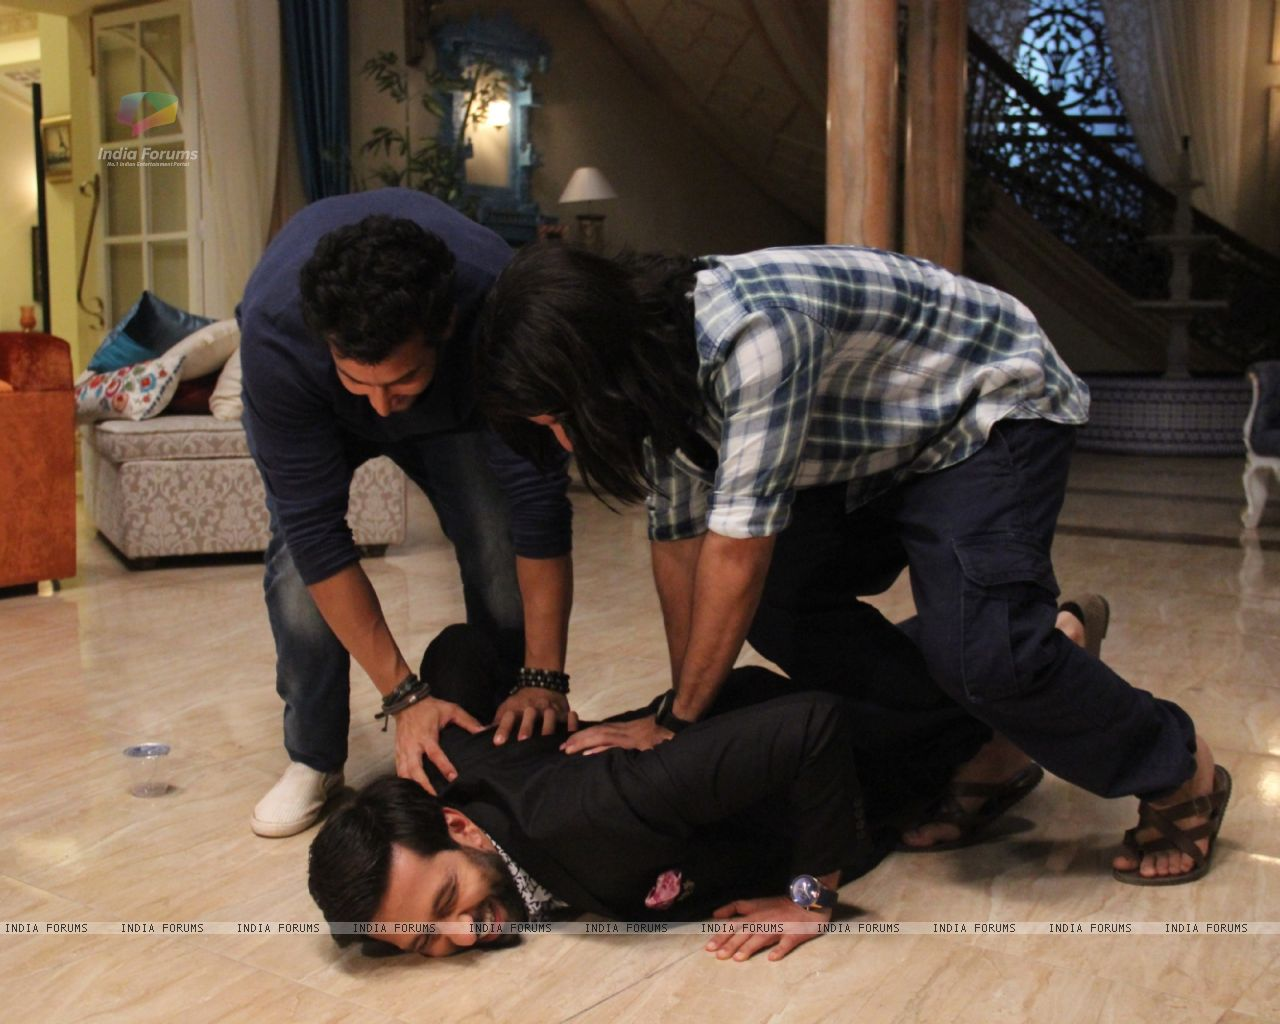 ishqbaaz destiny or unfaithful fate? Episode 10 by #Annie